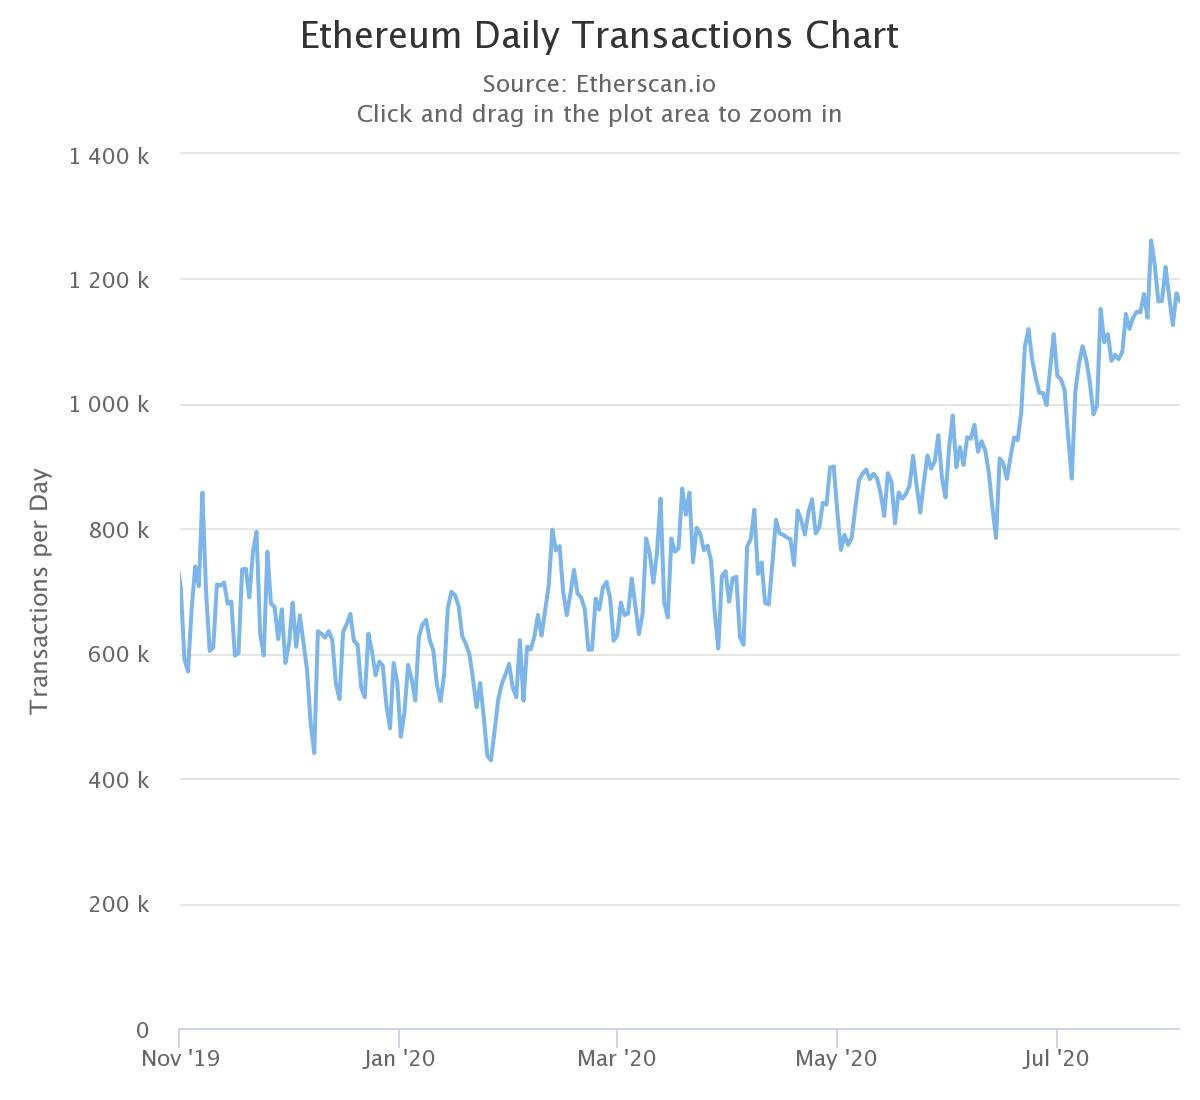 Ethereum Daily Transactions Chart